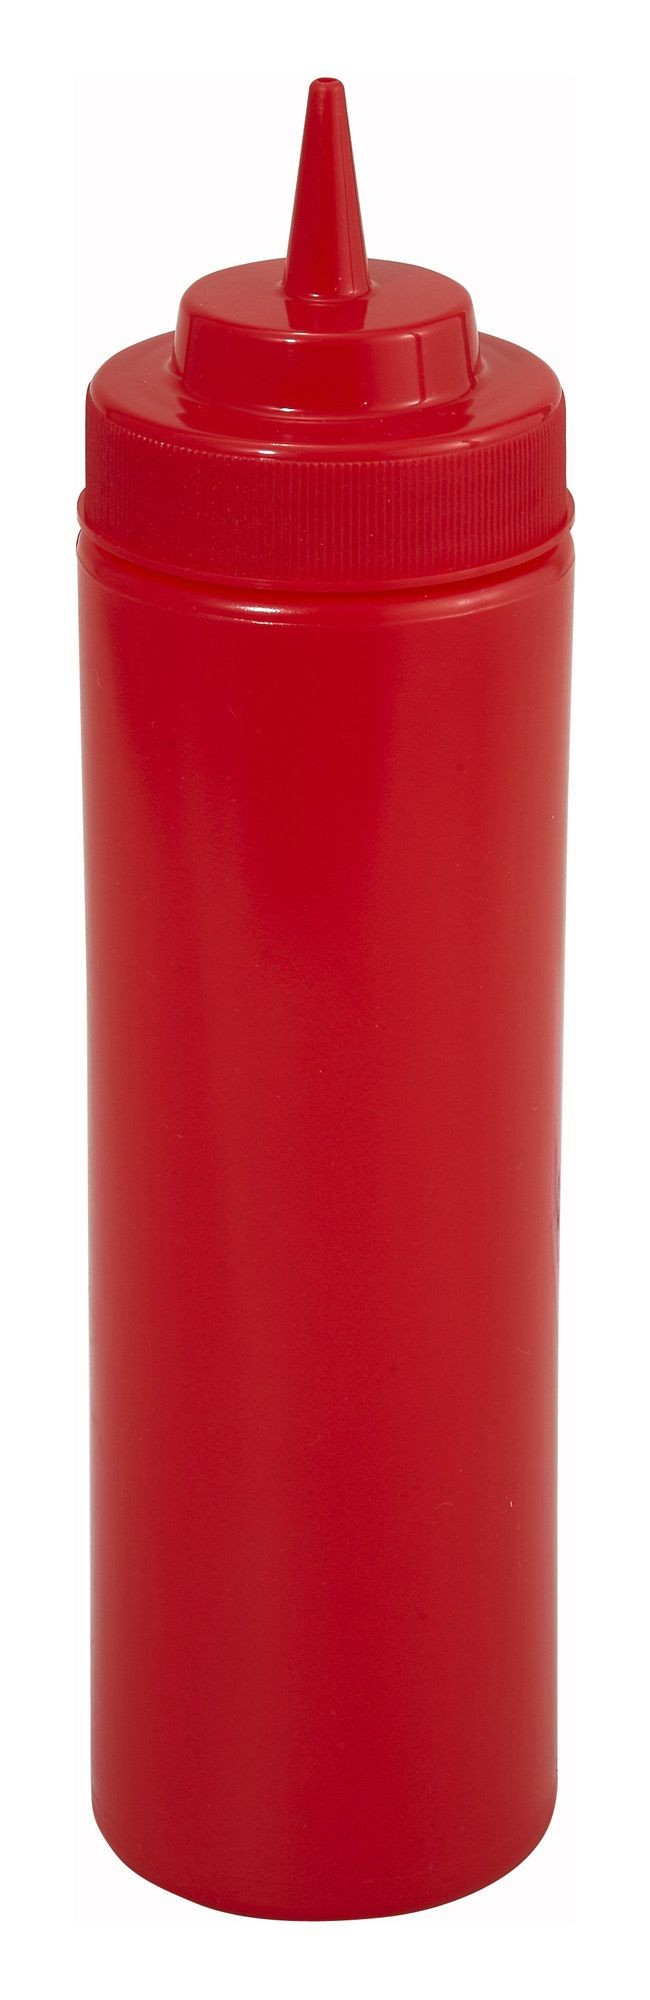 Winco PSW-12R Red Plastic 12 oz. Wide Mouth Squeeze Bottle